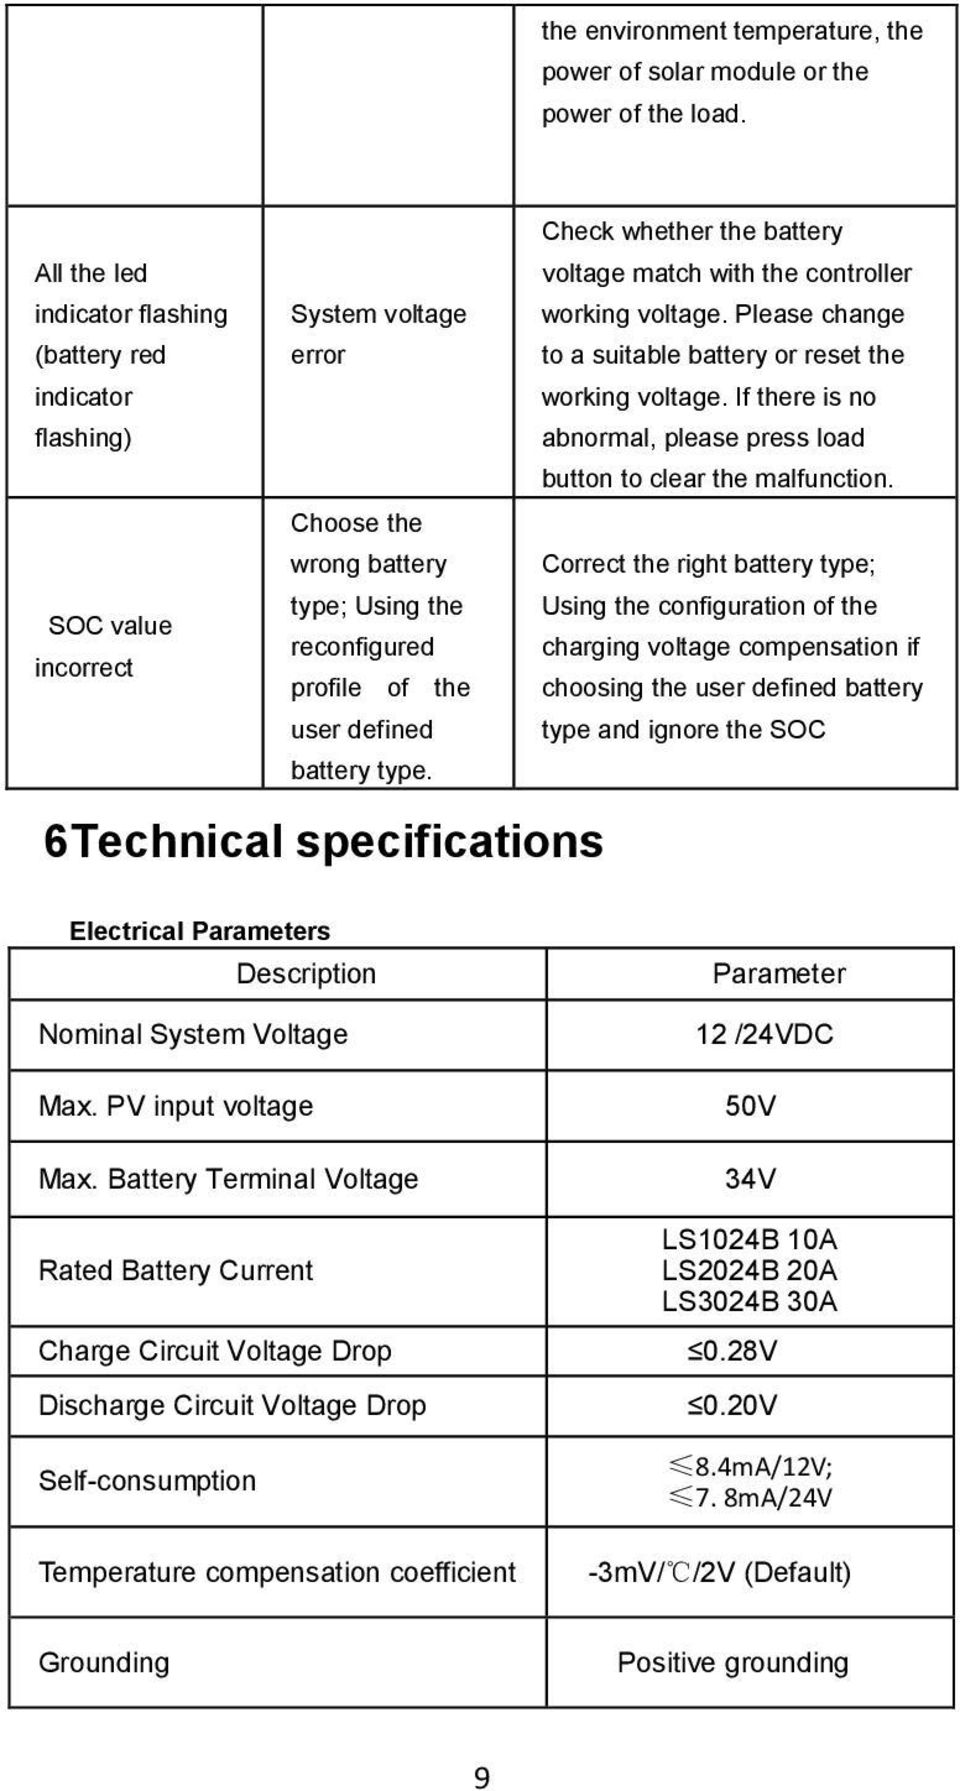 Ls1024b Ls2024b Ls3024b Solar Charge Controller User Manual Pdf 48v Battery Charger Circuit With High Low Cutoff Check Whether The Voltage Match Working Please Change To A